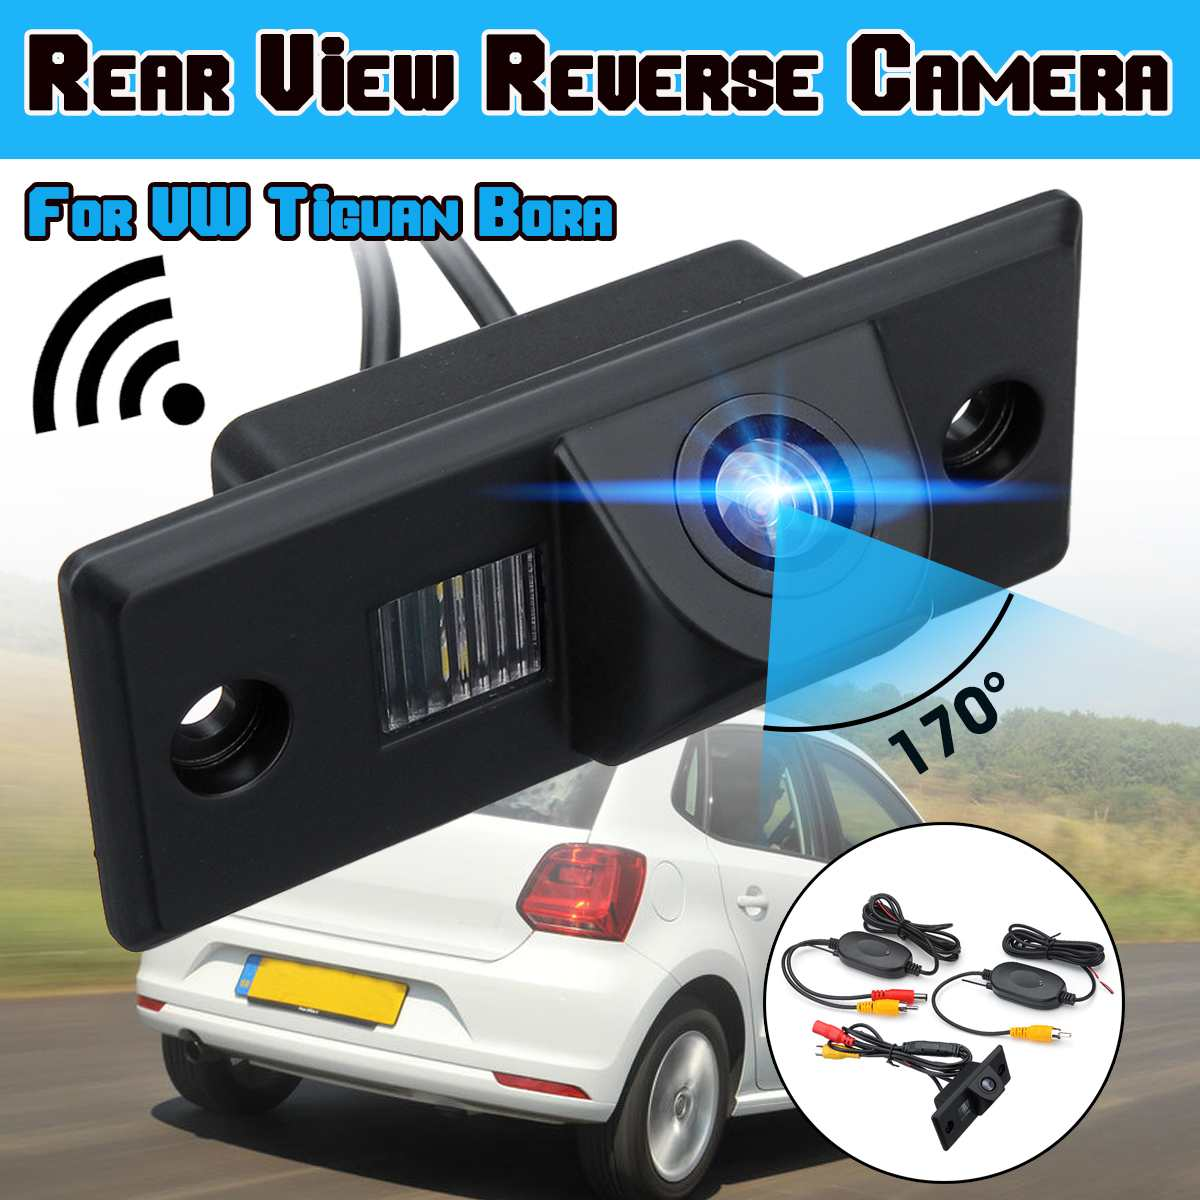 Car Rear View Camera Reverse Backup Parking for VW Tiguan Golf Mk4 Bora Polo Passat Jetta Porsche Cayenne Skoda Fabia Yeti